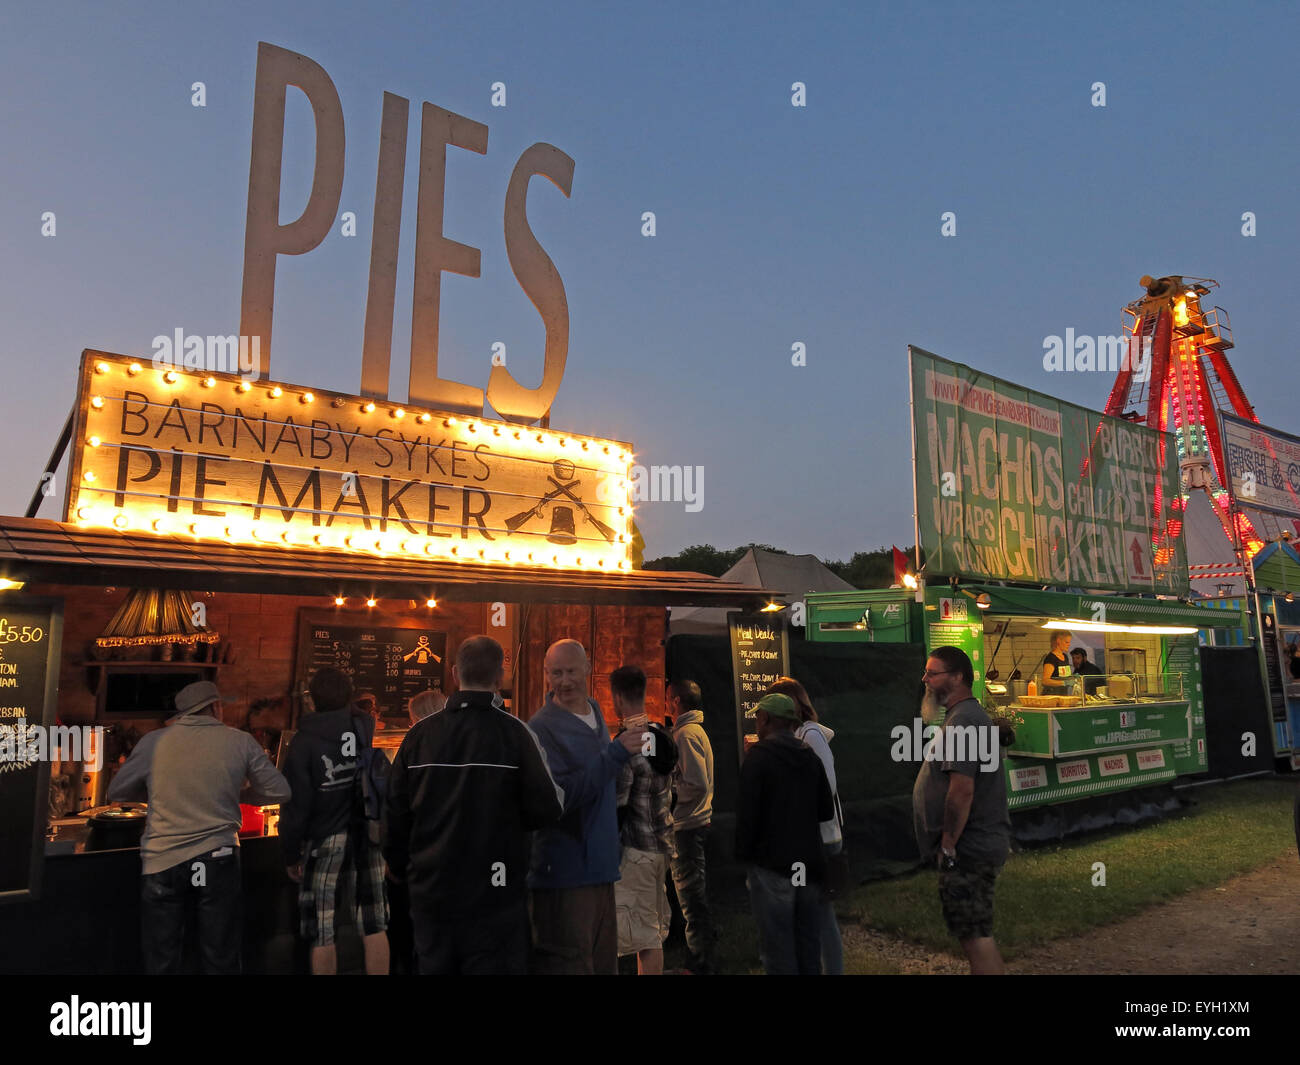 United Kingdom,GB,British,Great,Britain,Pie,England,English,Buy,on,sale,large,pastry,bake,off,BakeOff,dusk,night,evening,blue,orange,illuminated,Barnaby,Sikes,Sykes,crust,upper,factory,fair,ground,fairground,British Pie,This way,On Sale,Bake Off,Barnaby Sykes,Upper Crust,Pie factory,GoTonySmith,amusements,food,fast,fastfood,mash,Buy Pictures of,Buy Images Of,Fast Food,Pie and mash